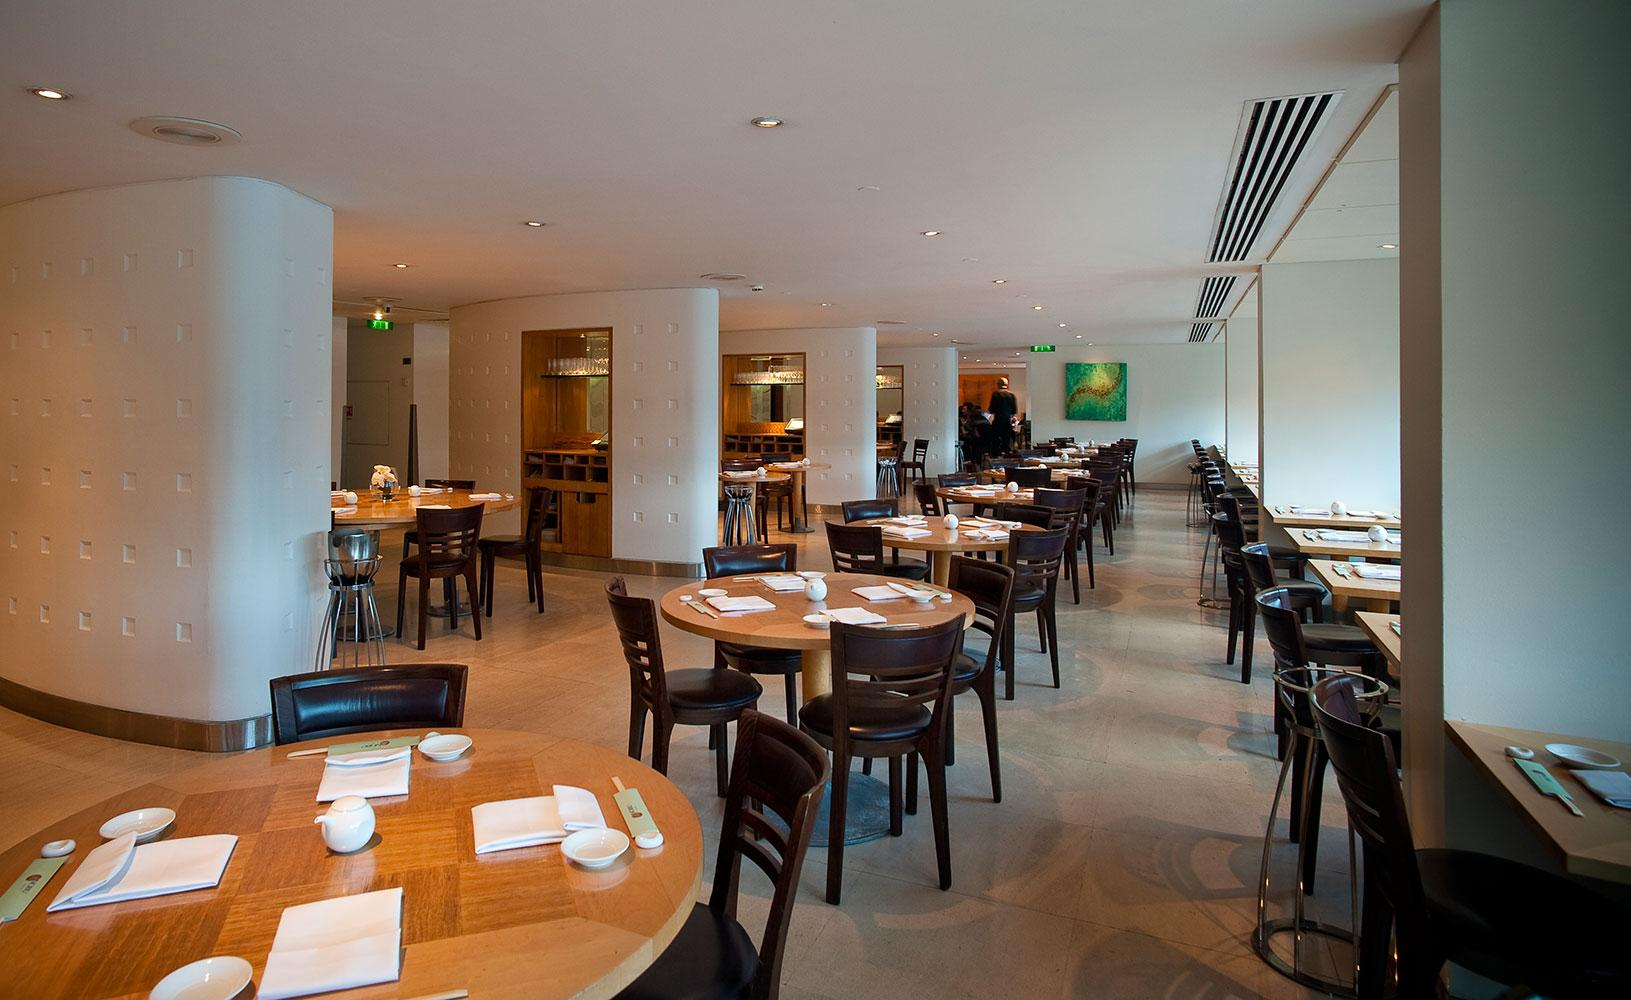 Nobu old park lane i london book et bord for Best private dining rooms west end london